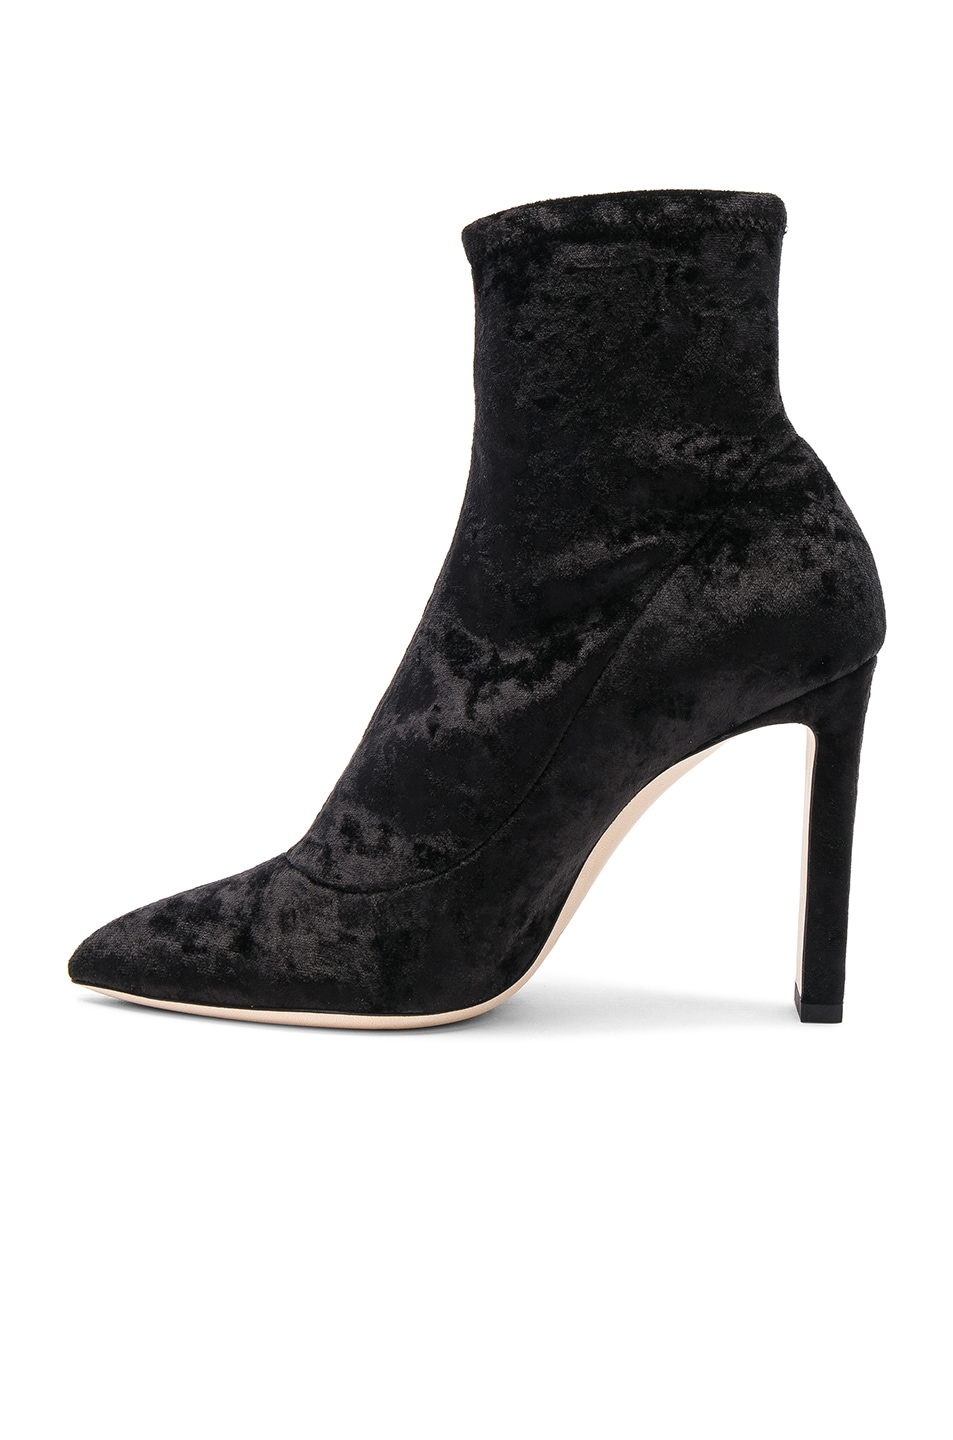 Image 5 of Jimmy Choo Louella 100 Crushed Velvet Boots in Black